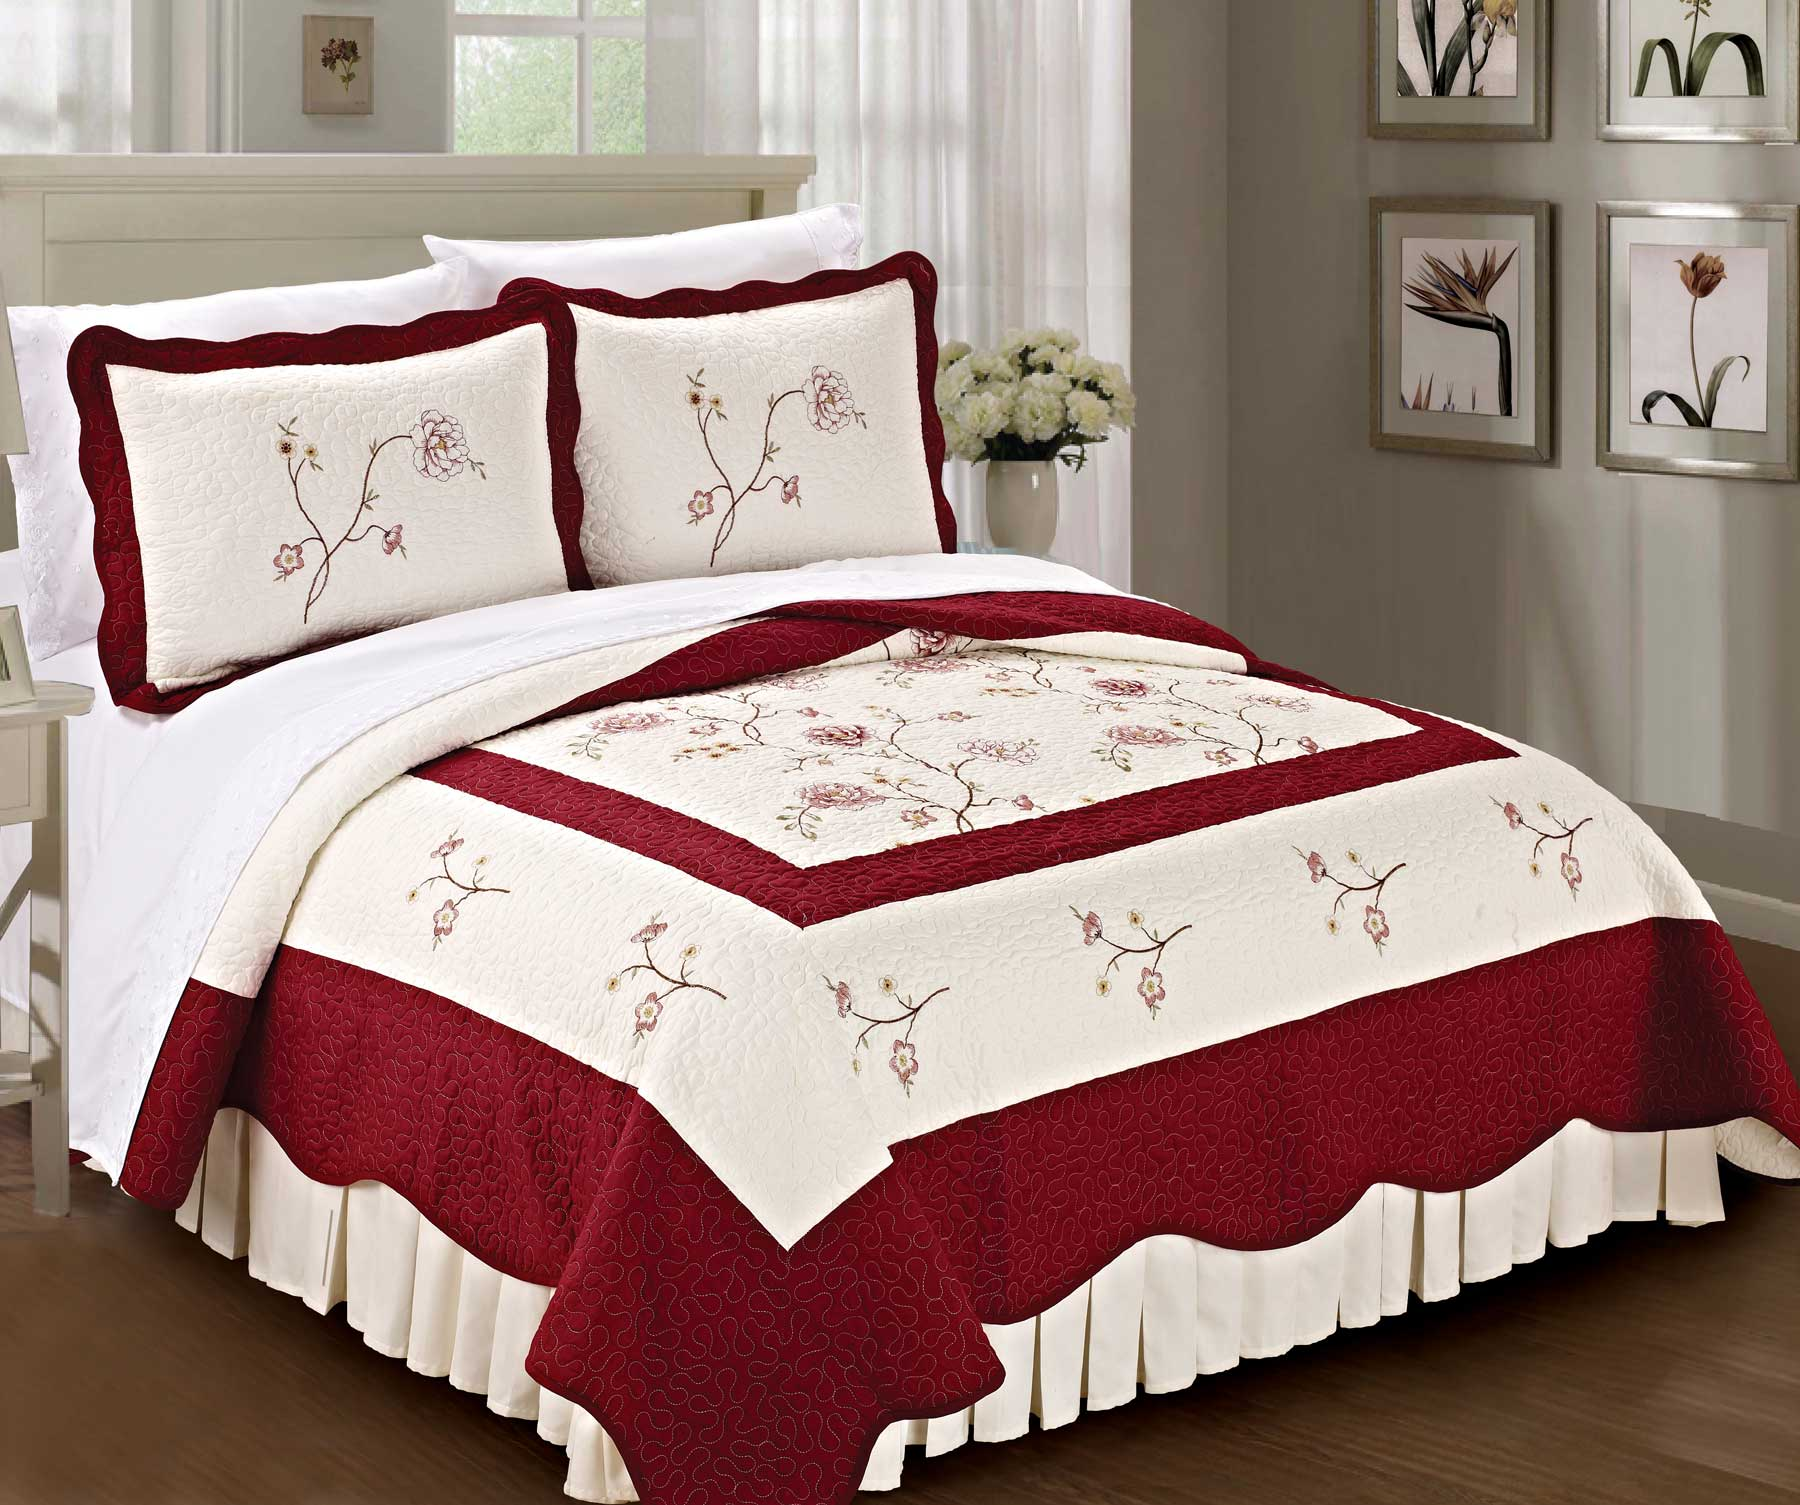 A Classic Style With High-End Matierials - Blissful Comforts : burgundy quilts - Adamdwight.com